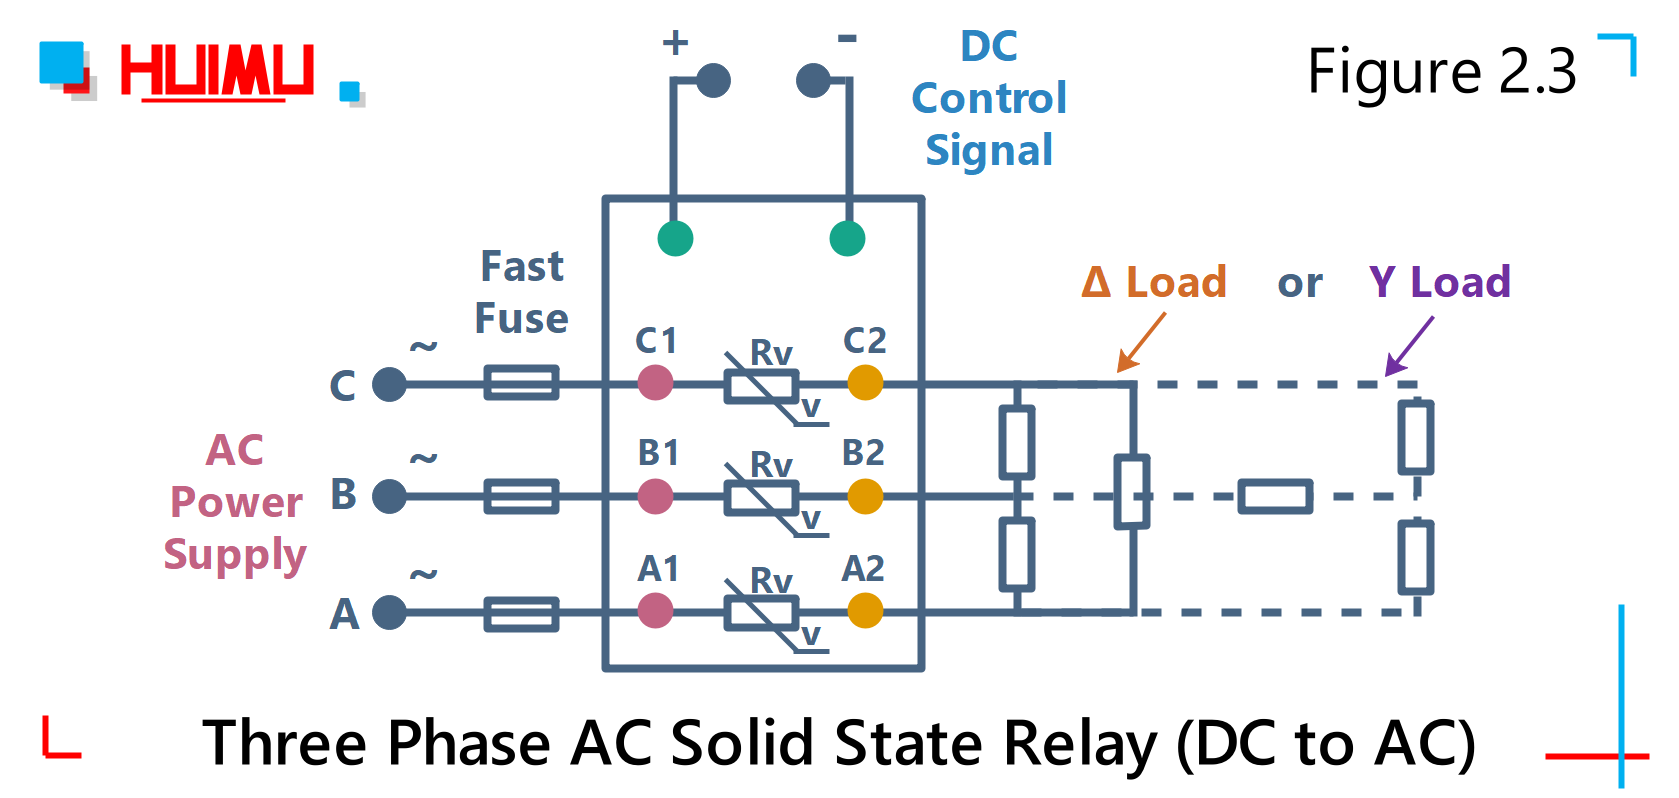 three phase AC solid state relay (DC to AC) wiring diagram and circuit diagram